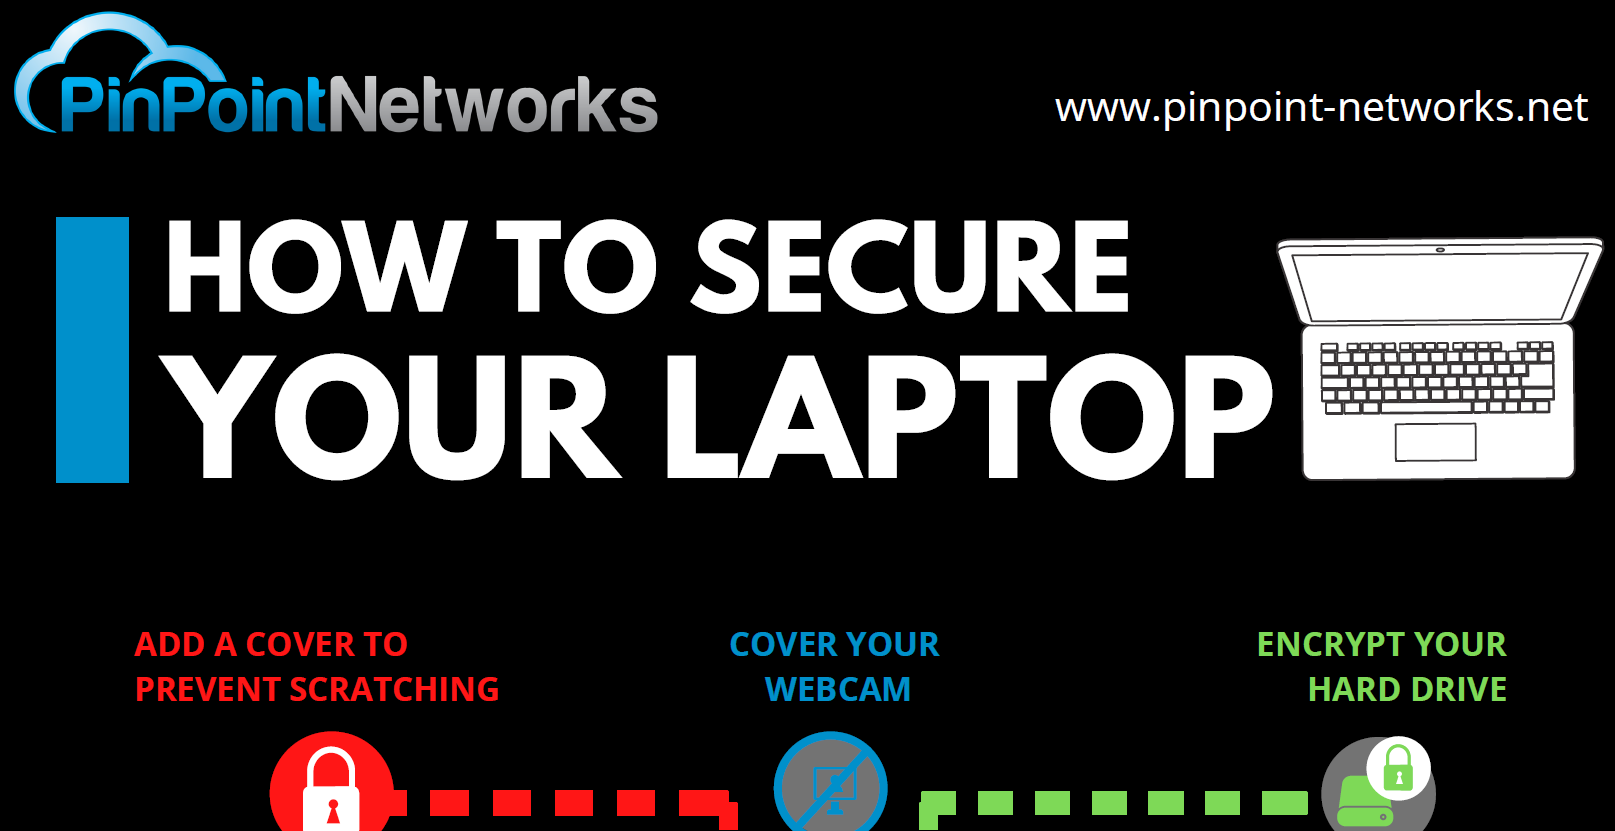 How To Secure Your Laptop